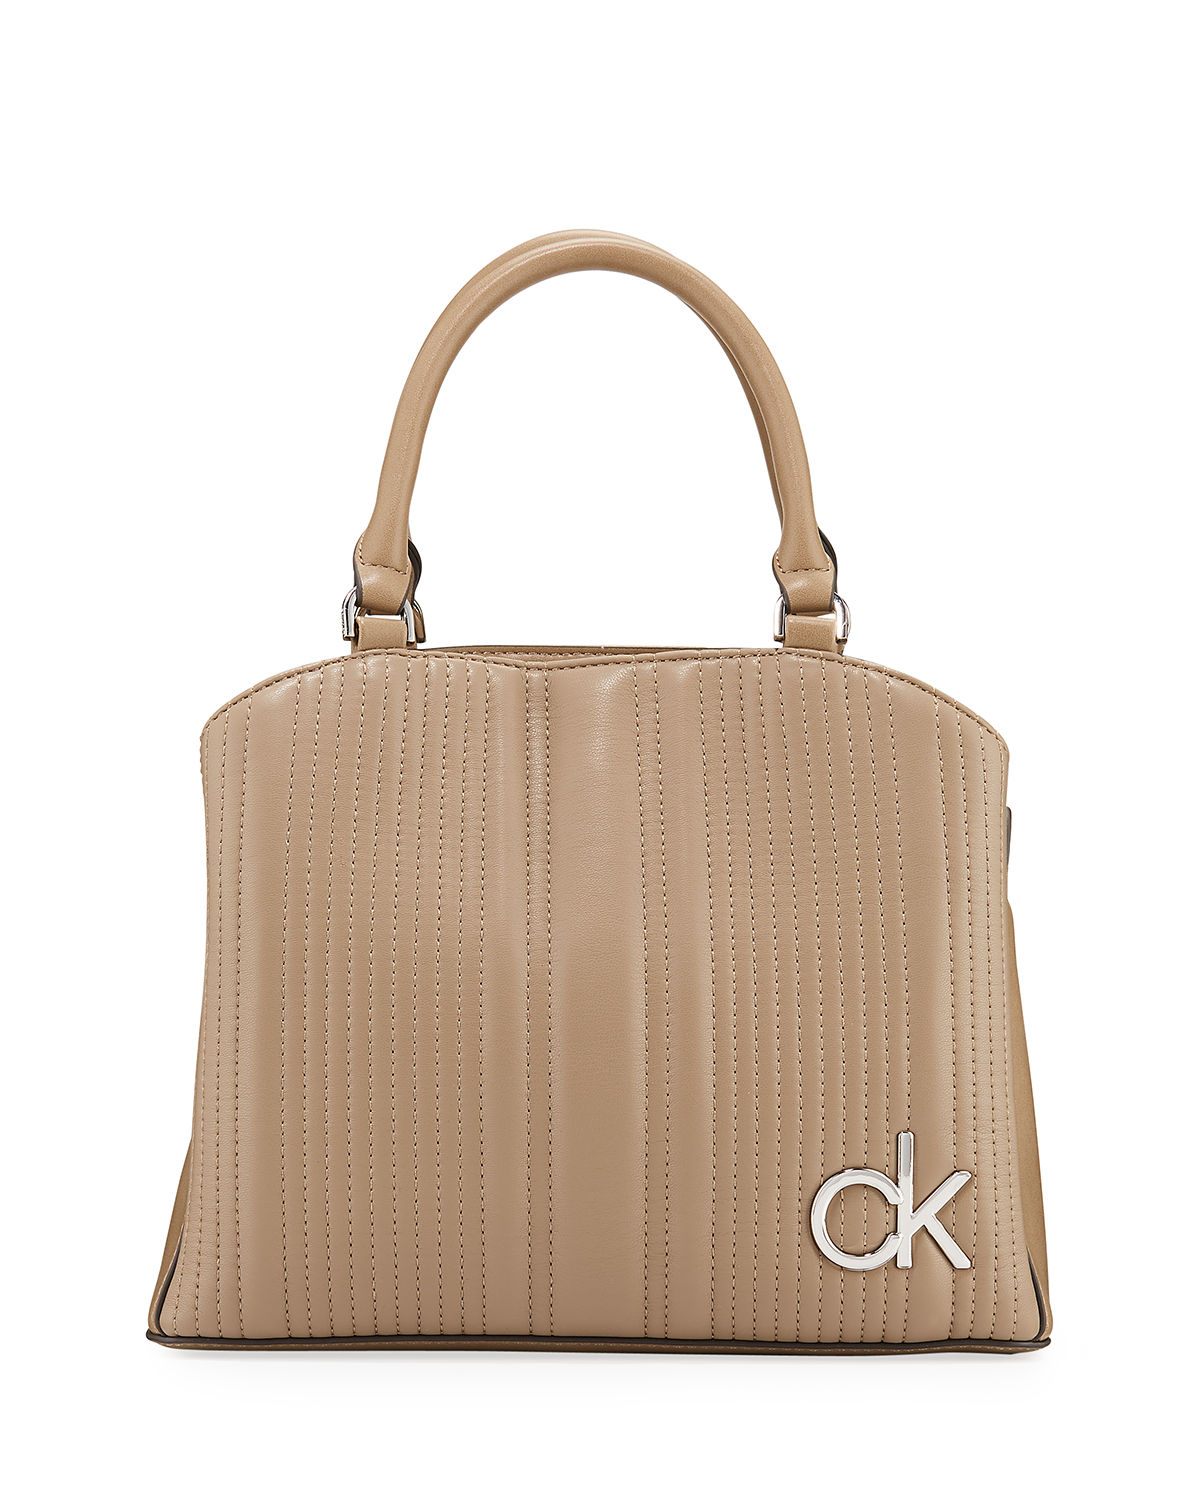 Calvin Klein Quilted Leather Top-Handle Satchel Bag In Taupe